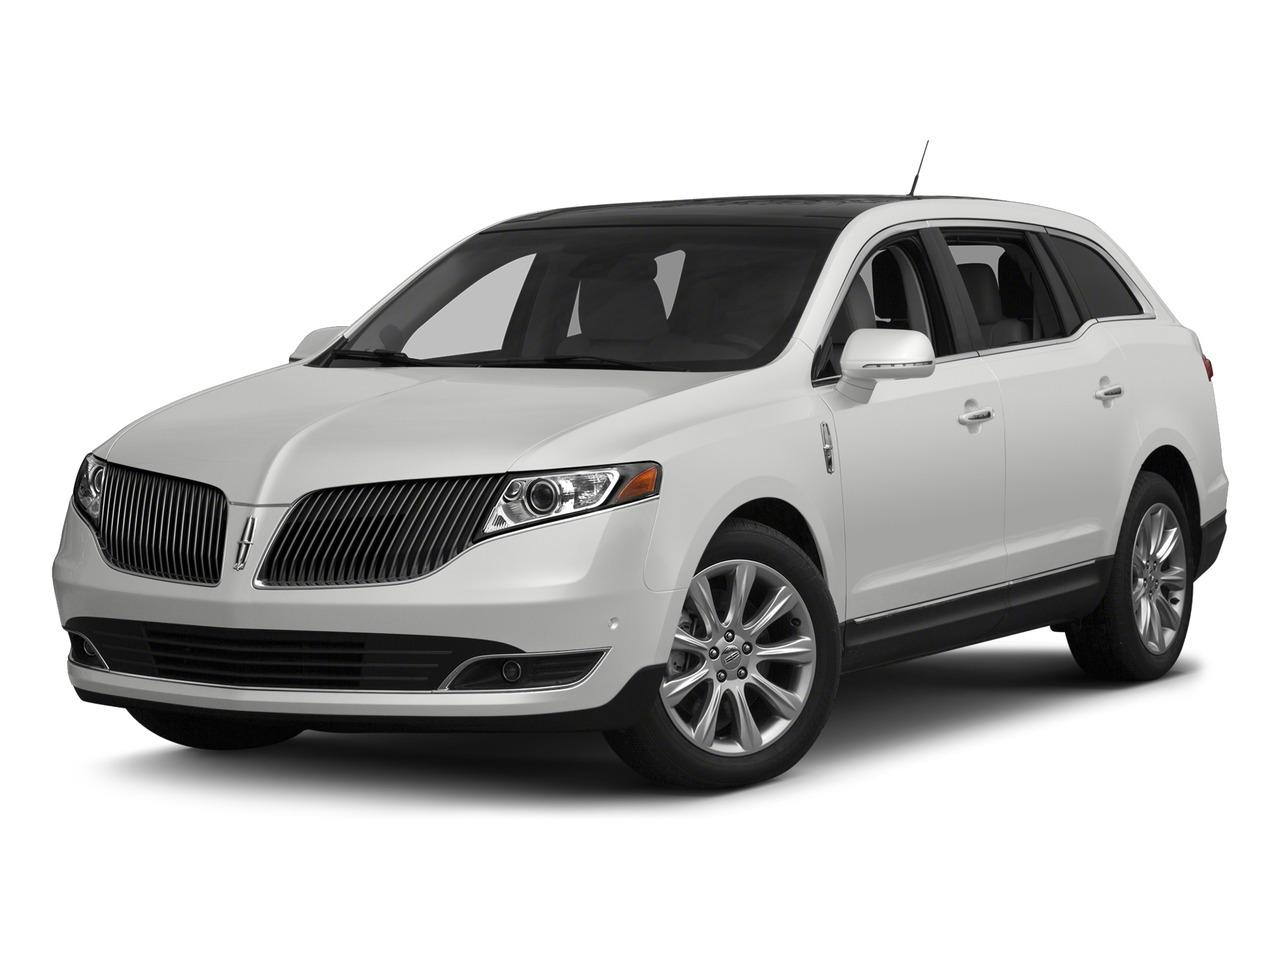 2015 LINCOLN MKT Vehicle Photo in Milford, OH 45150